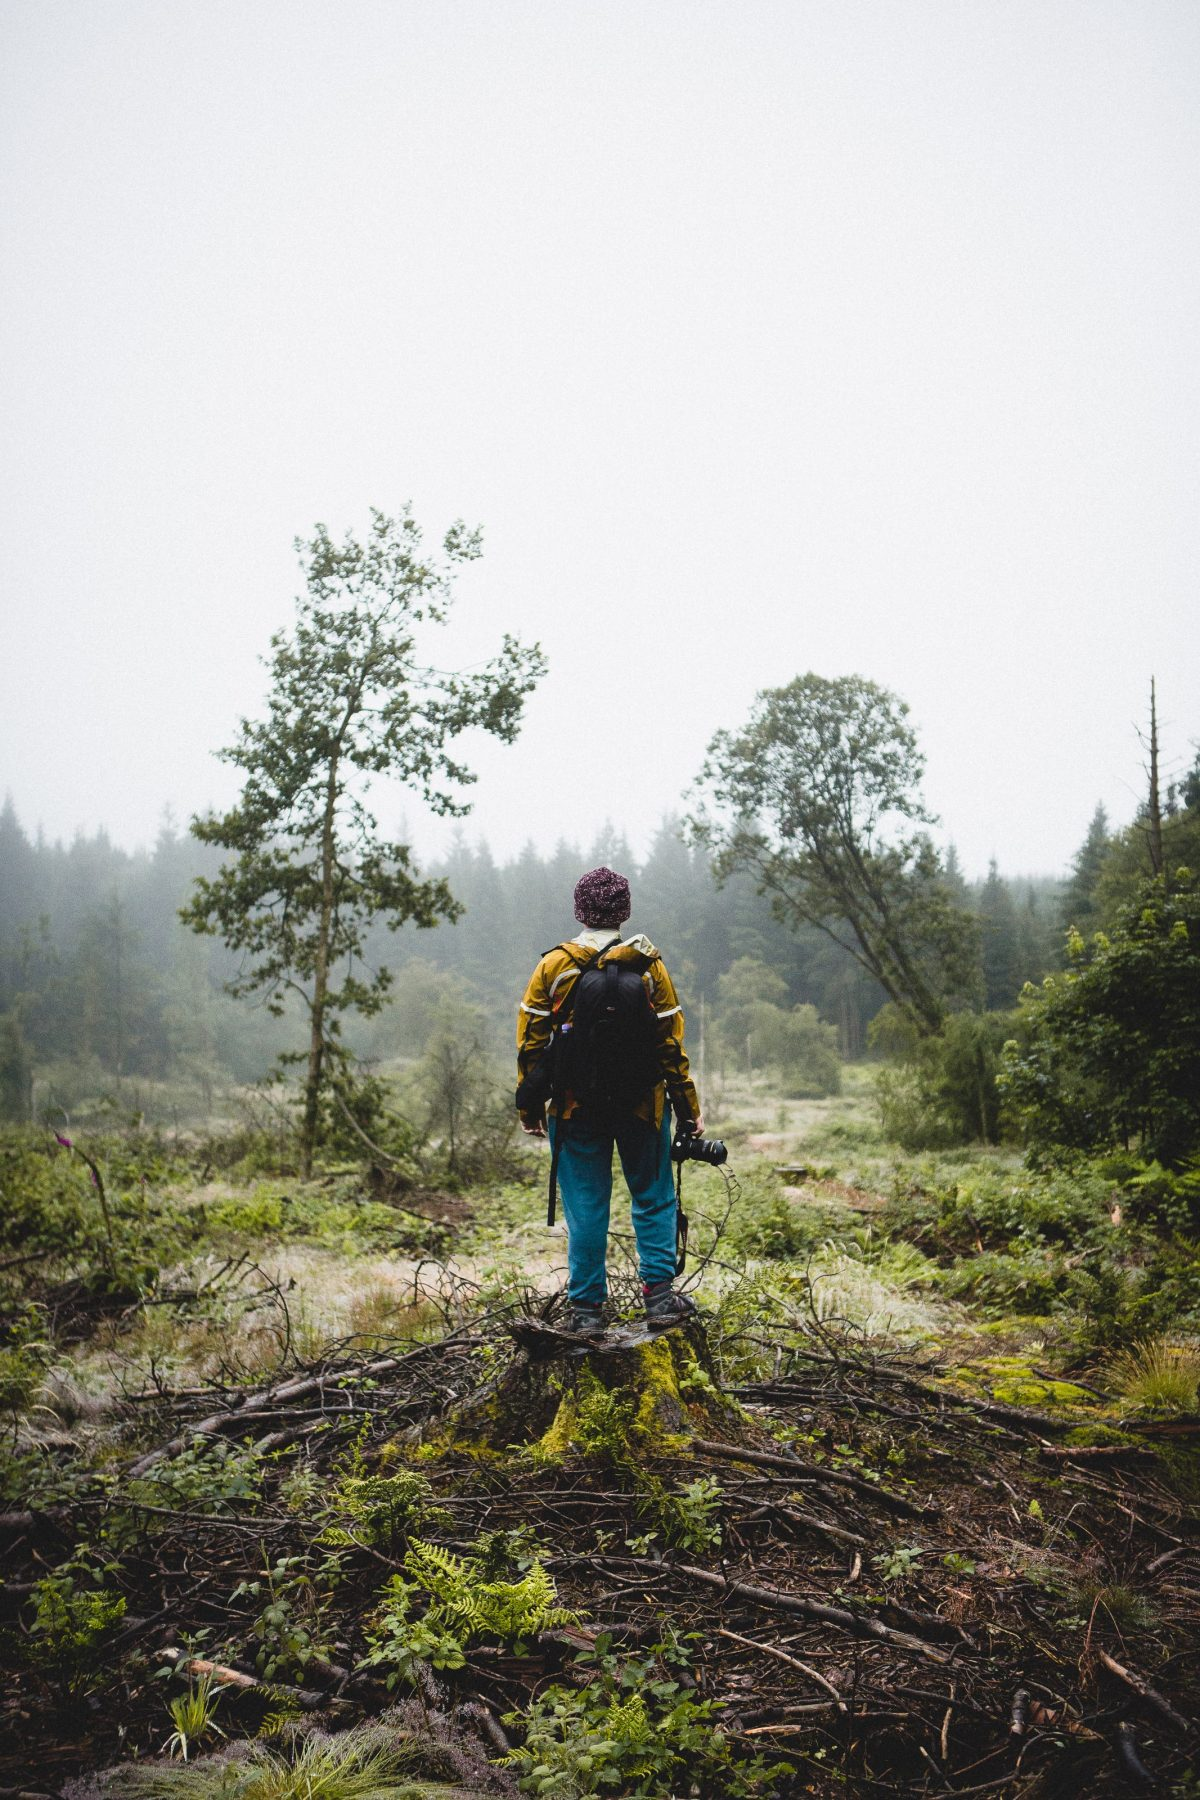 samuel thompson pjk1OPA0YM4 unsplash - Why You Need A Trail Camera On Your Next Vacation